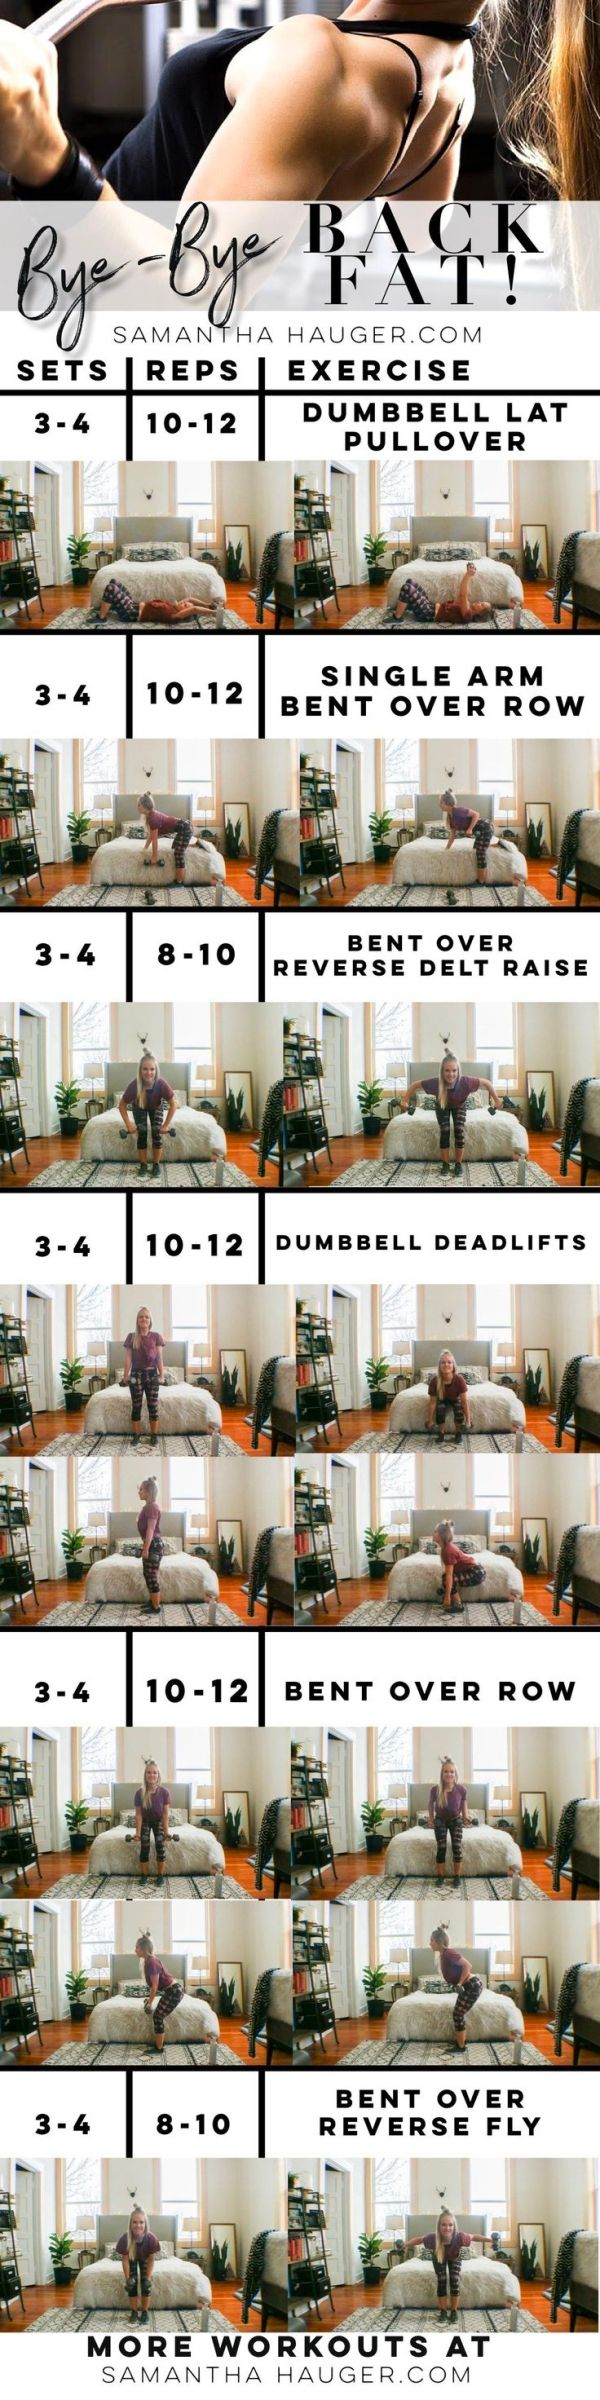 How To Get Rid Of Back Fat. How To Lose Back Fat. Exercises for back fat. Back workout for women. Back exercises. How to lose back fat. by beulah